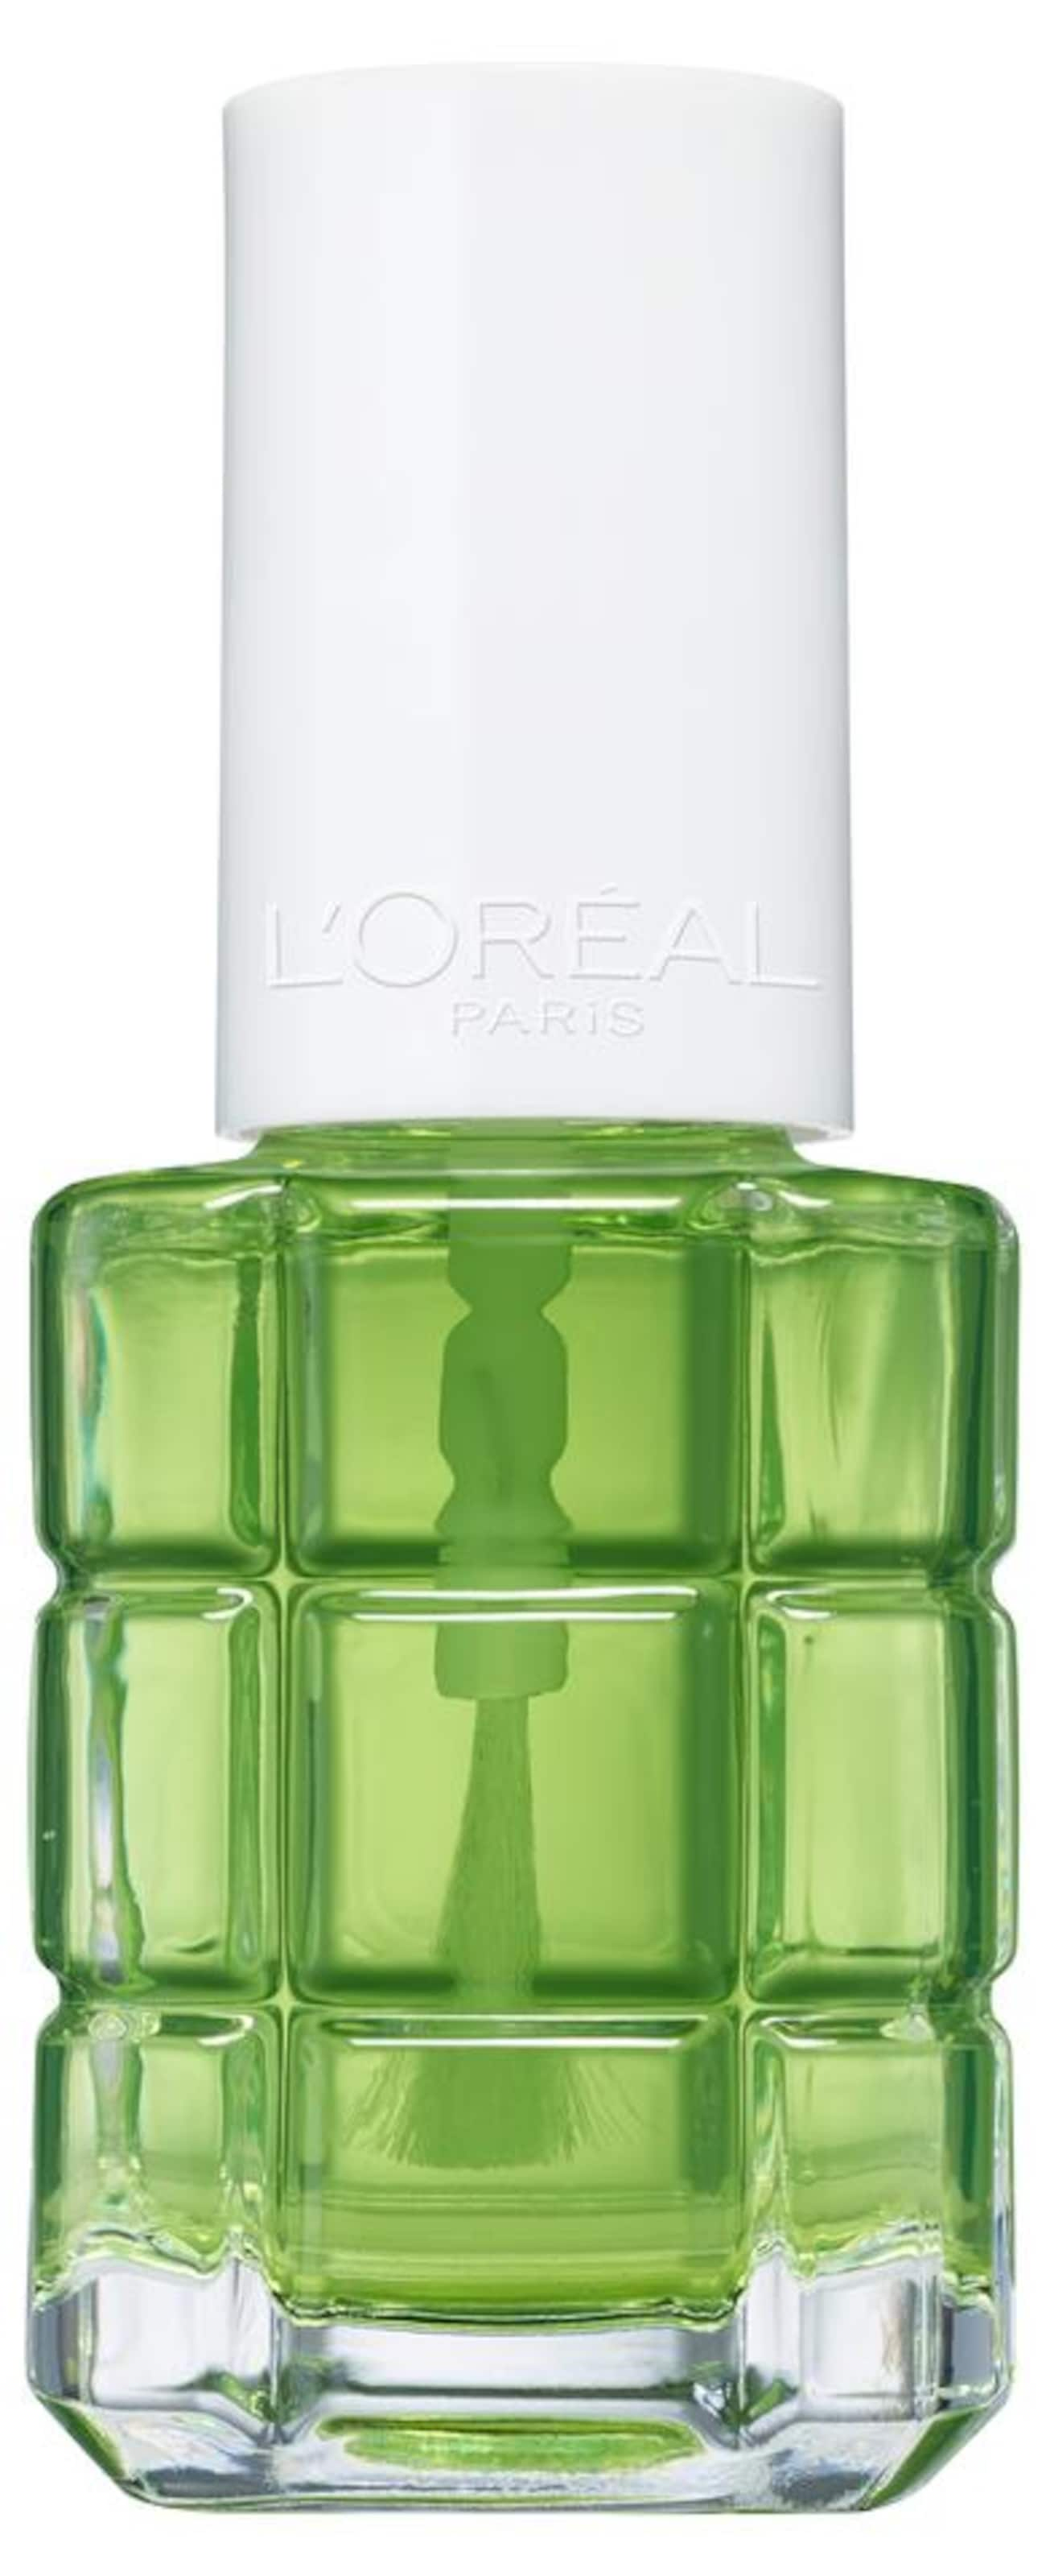 L'Oréal Paris 'Le Base Coat Strengthening' Nagellack Freies Verschiffen Vermarktbare Footaction Günstiger Preis Online-Shopping-Original umEta